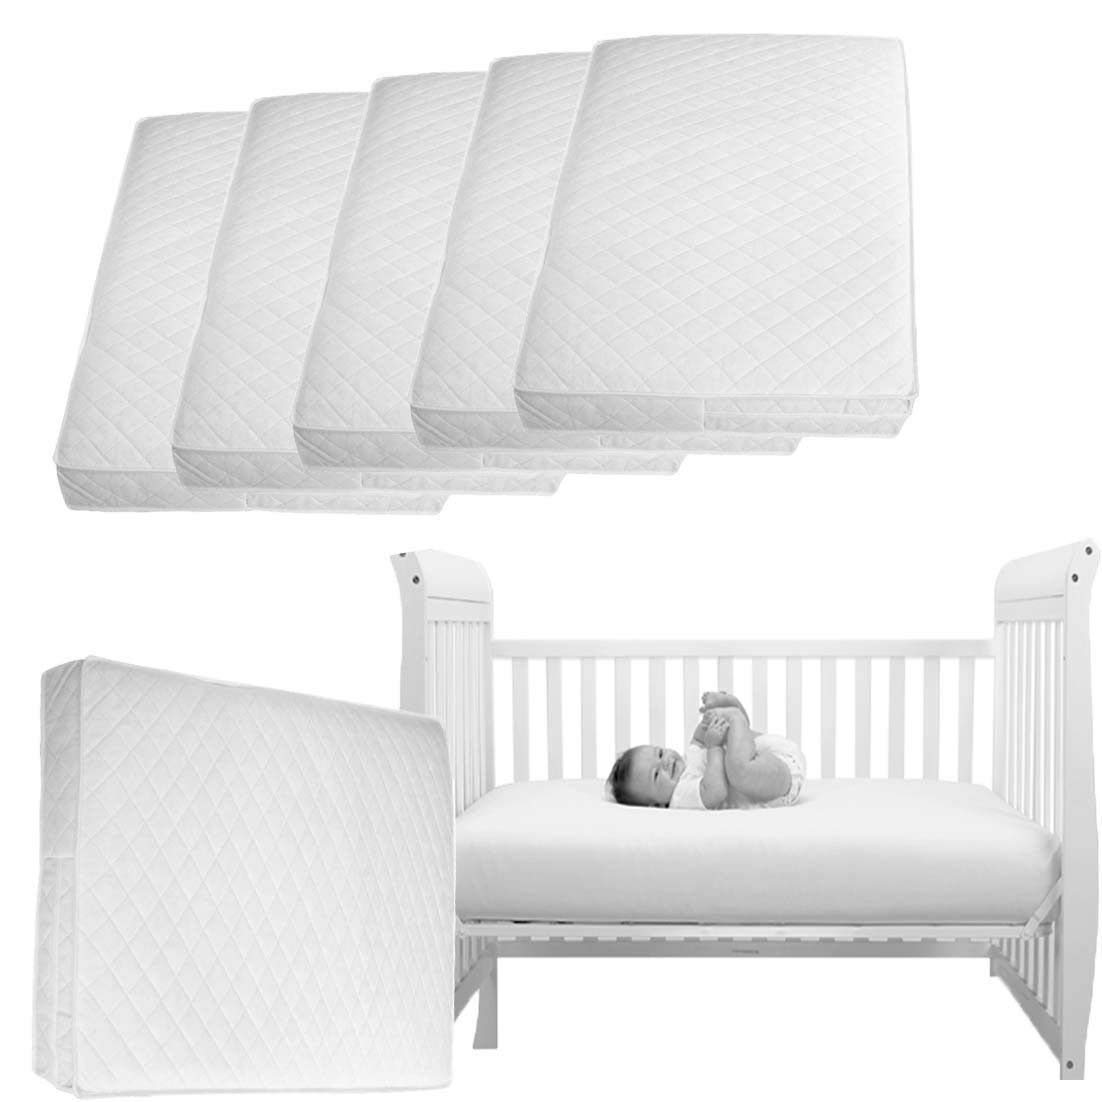 Bassinet & Cradle Mattresses 74x28x4cm & 84x43x4cm Quilte Moses Basket Foam Moses Basket or Pram Mattress Rounded Both Ends (74x28x4cm) Zi Foam Ltd Z74cm